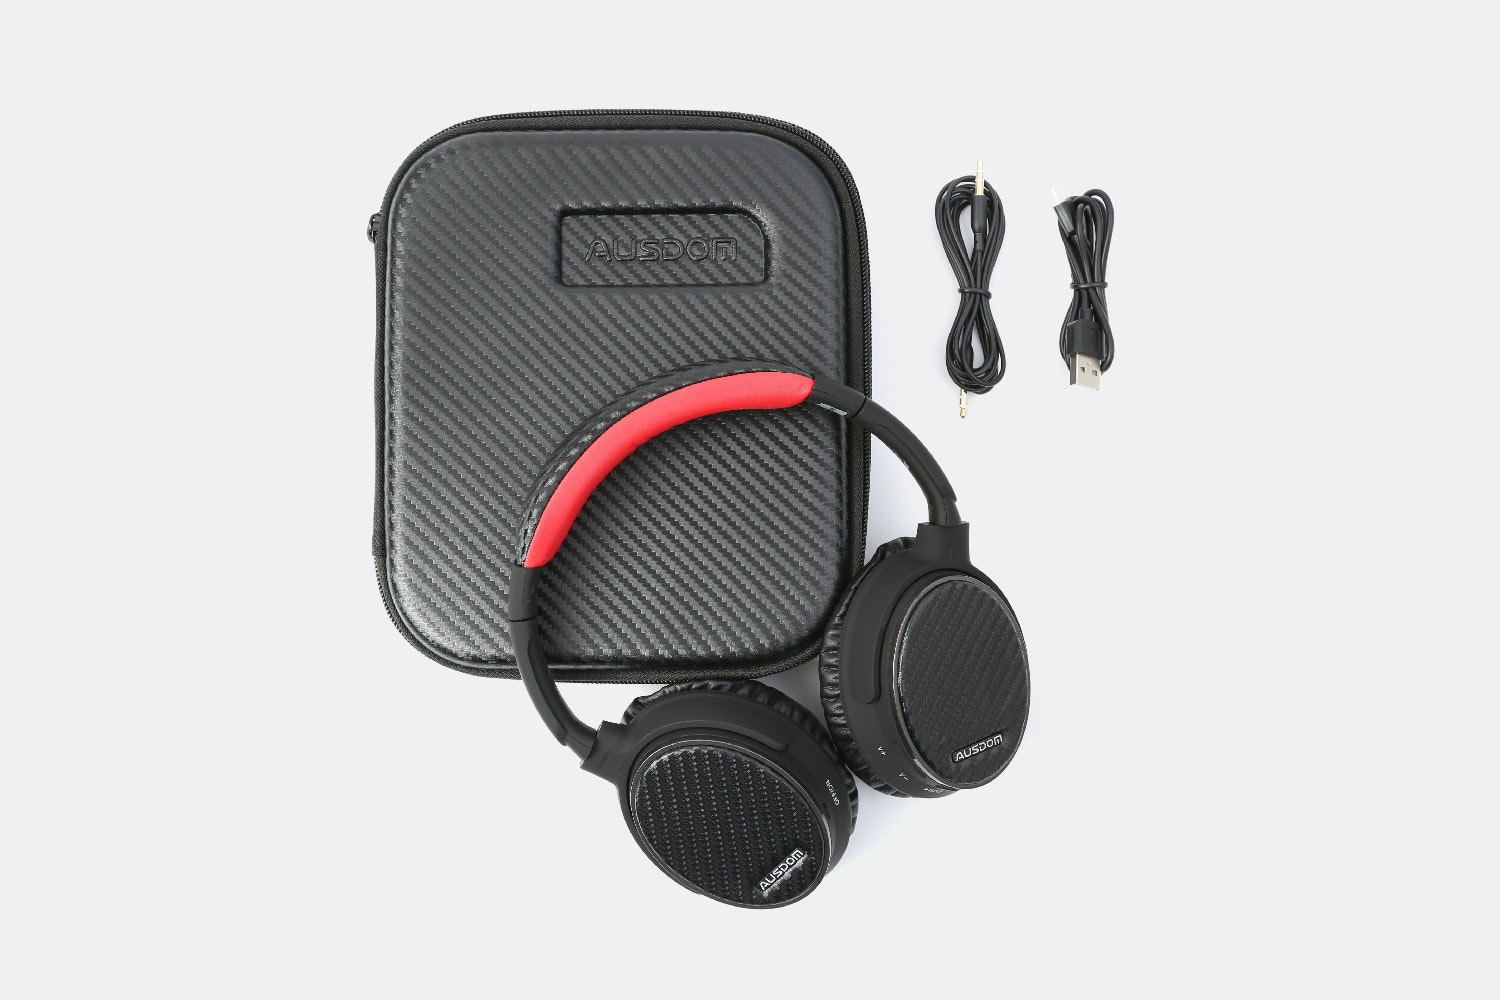 Ausdom ANC7 Bluetooth Headphones